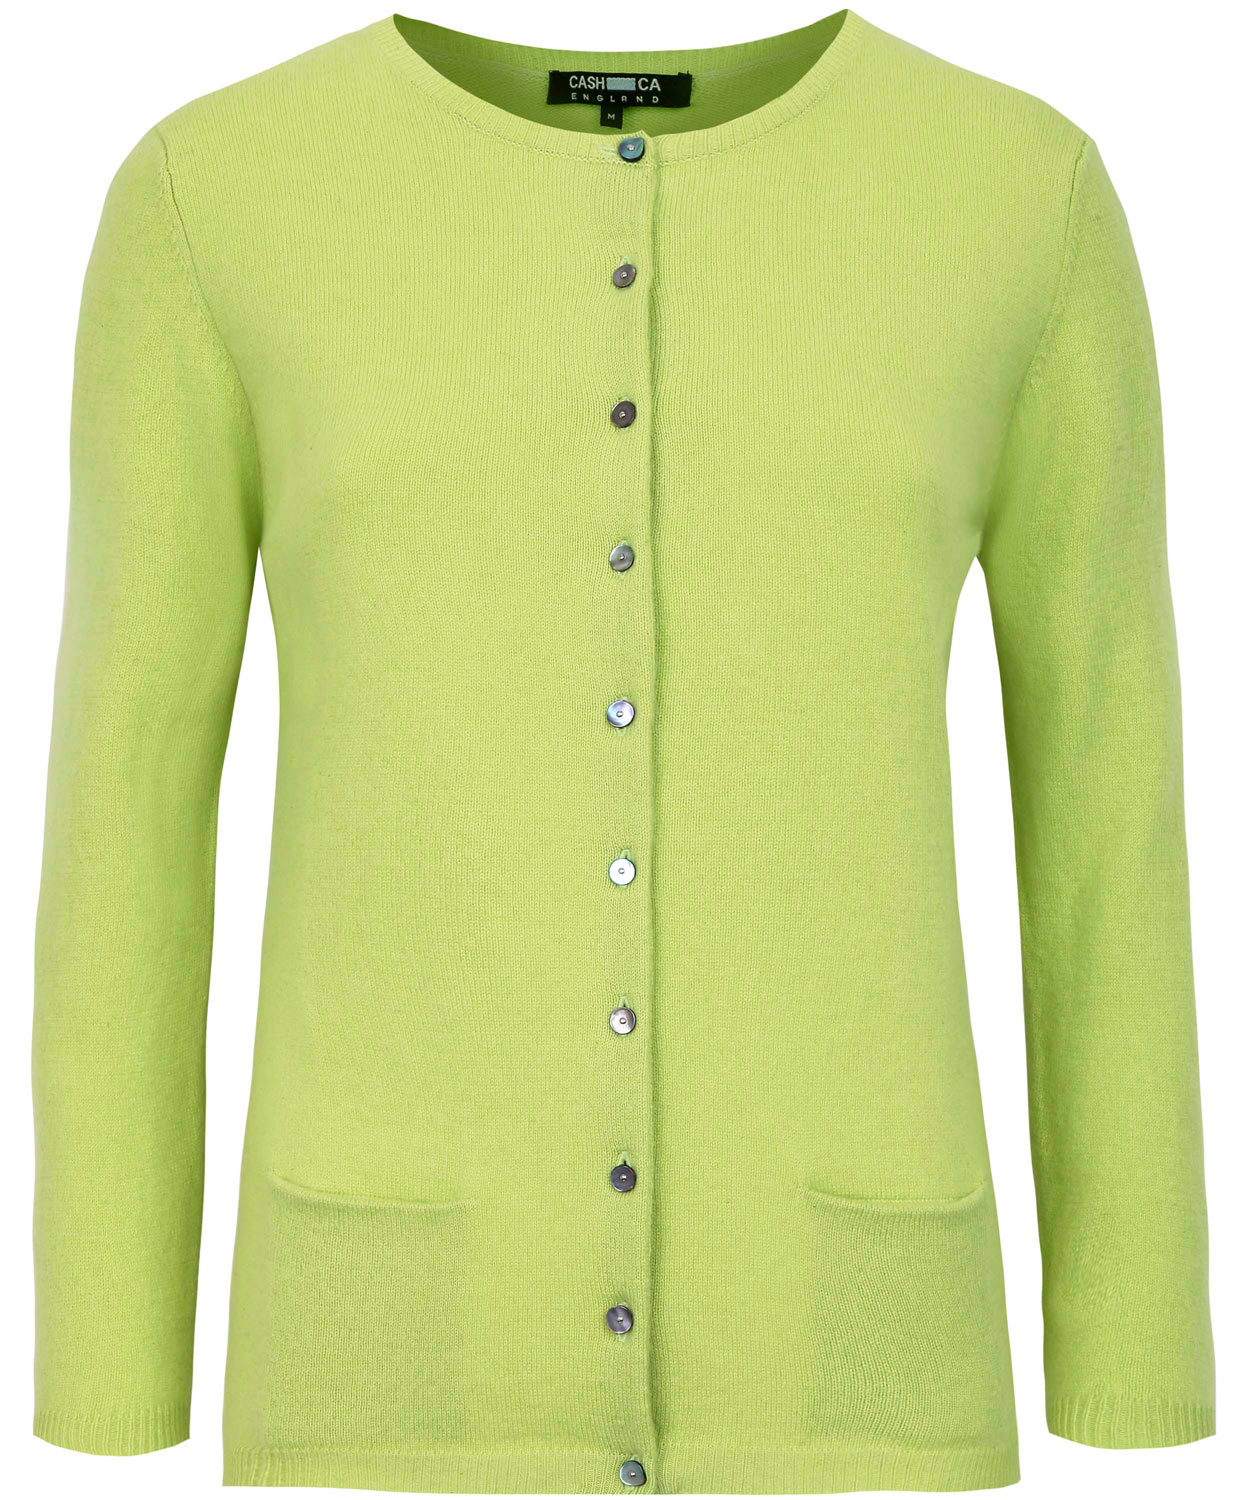 Cash ca Lime Green Cashmere Crew Neck Cardigan in Green | Lyst